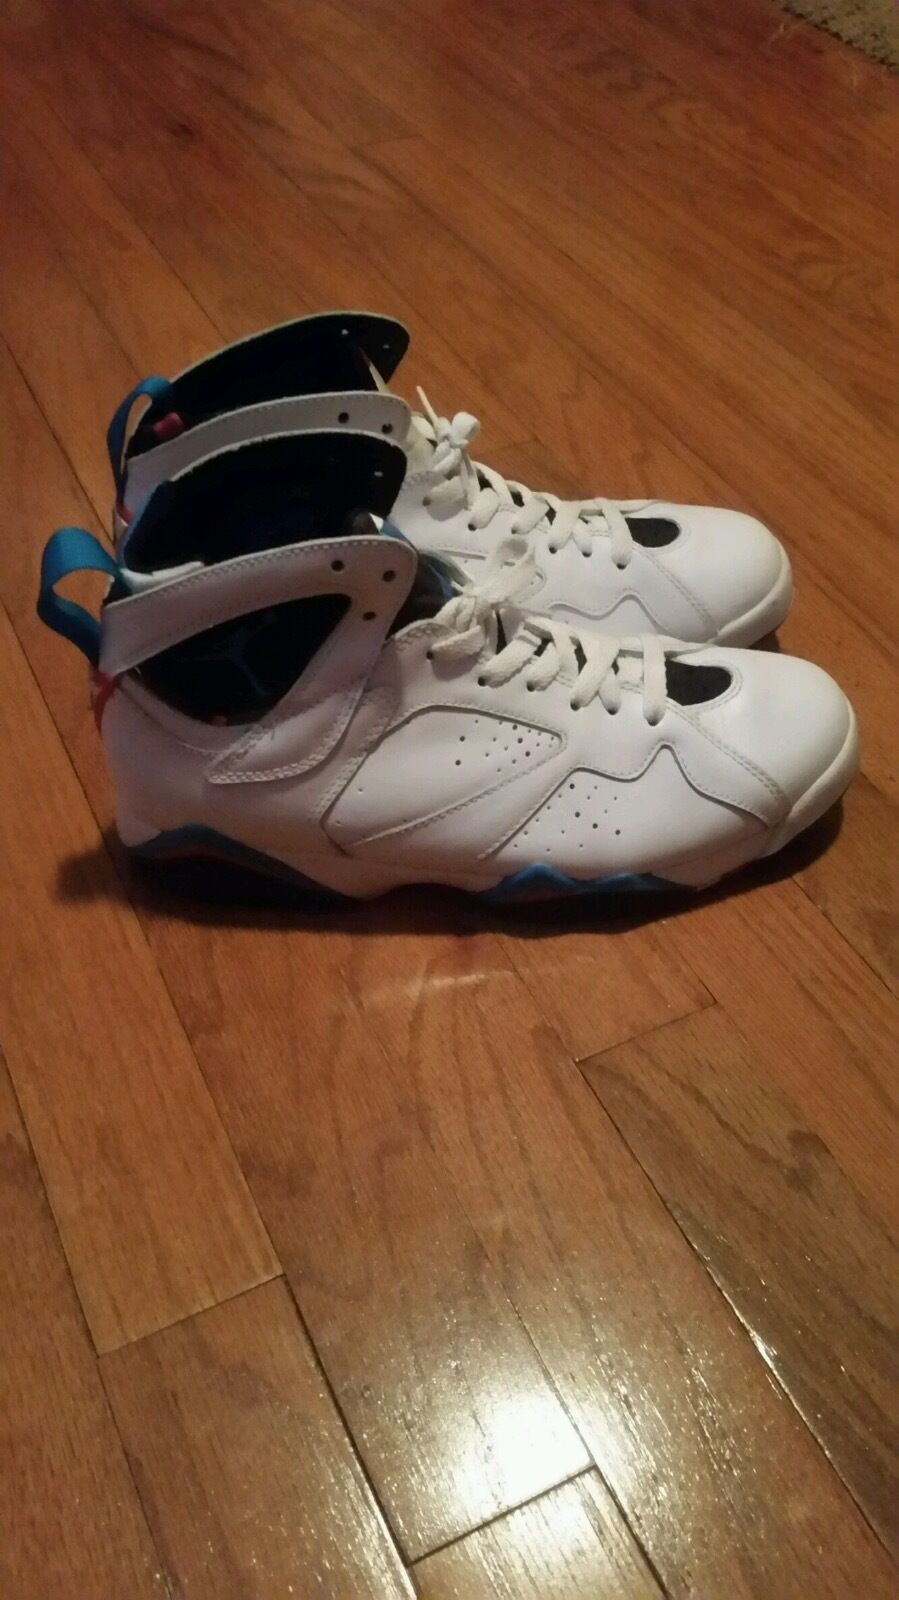 NIKE AIR JORDAN VII Price reduction RETRO WHITE/ORION BLUE/BLACK/INFRARED RED MENS SIZE 8.0 The latest discount shoes for men and women